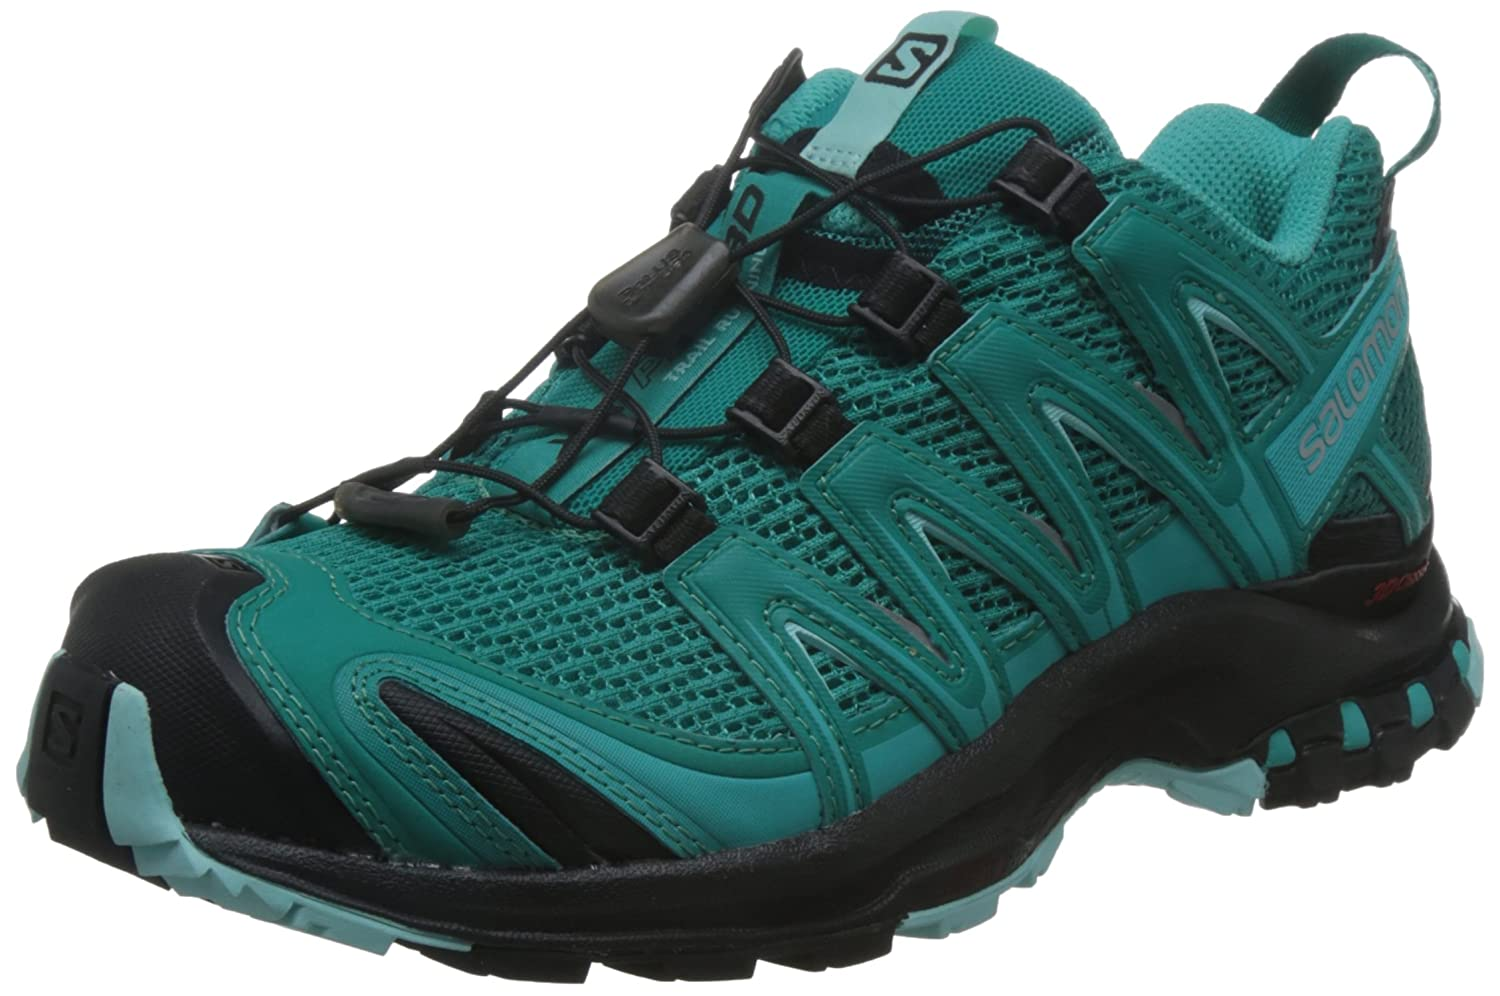 Salomon Women's Xa Pro 3D W Trail Runner B01HD2PF3O 5.5 B(M) US|Deep Peacock Blue/Black/Aruba Blue